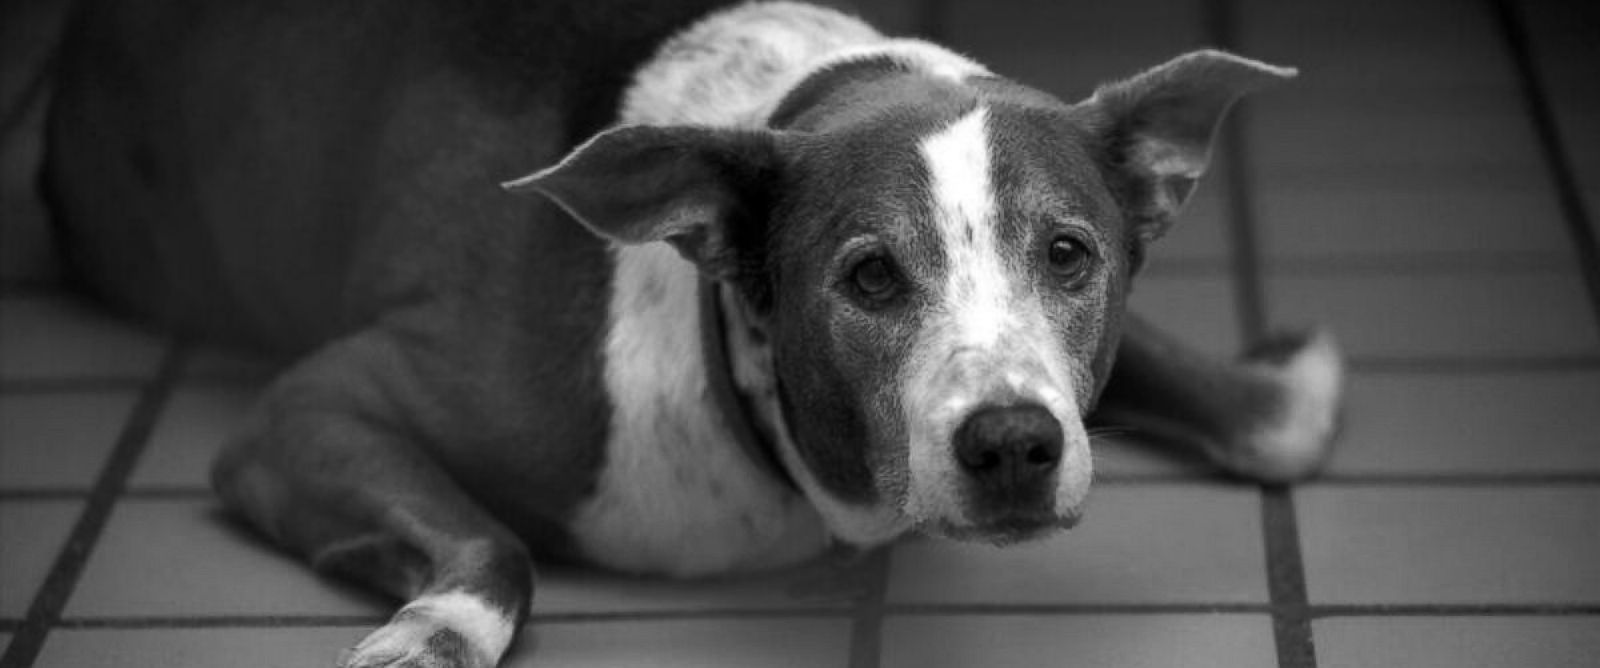 PHOTO: Roofus, a Weimaraner-mix seen in this undated handout photo, was adopted Feb. 6, 2016 after spending 6 years in the Bishop Animal Shelter in Bradenton, Fla.